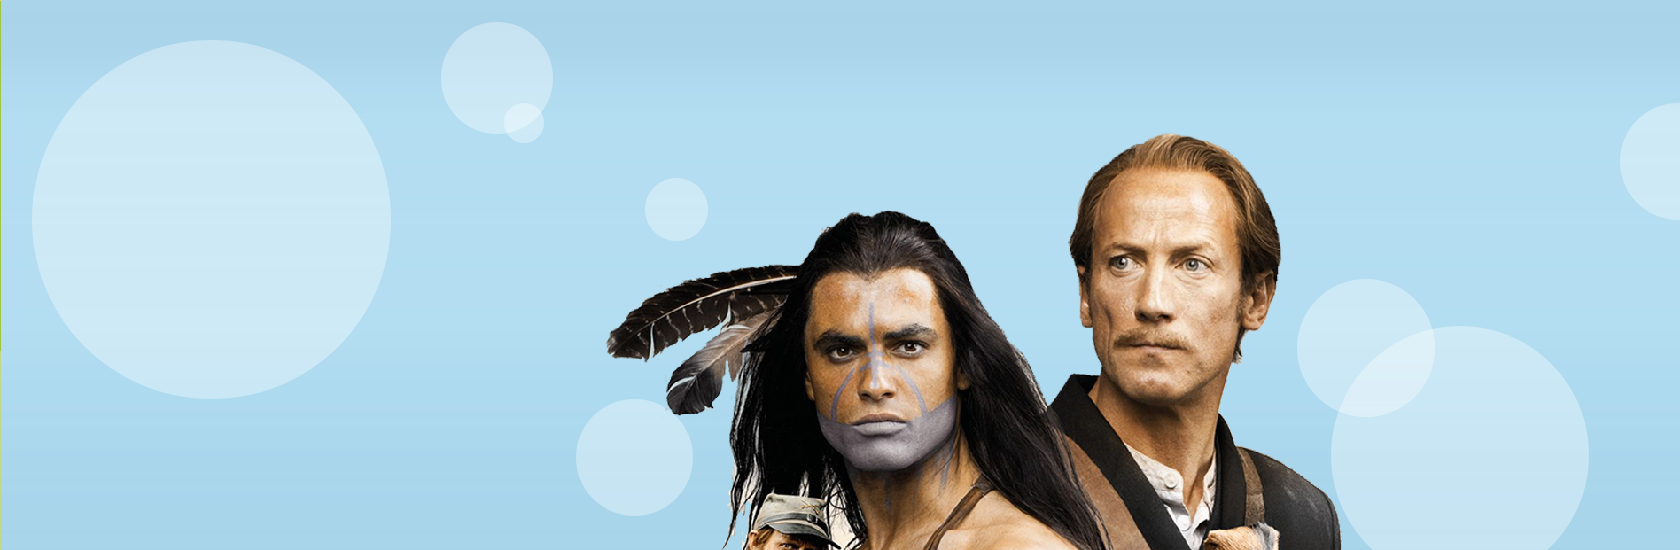 Header-Winnetou